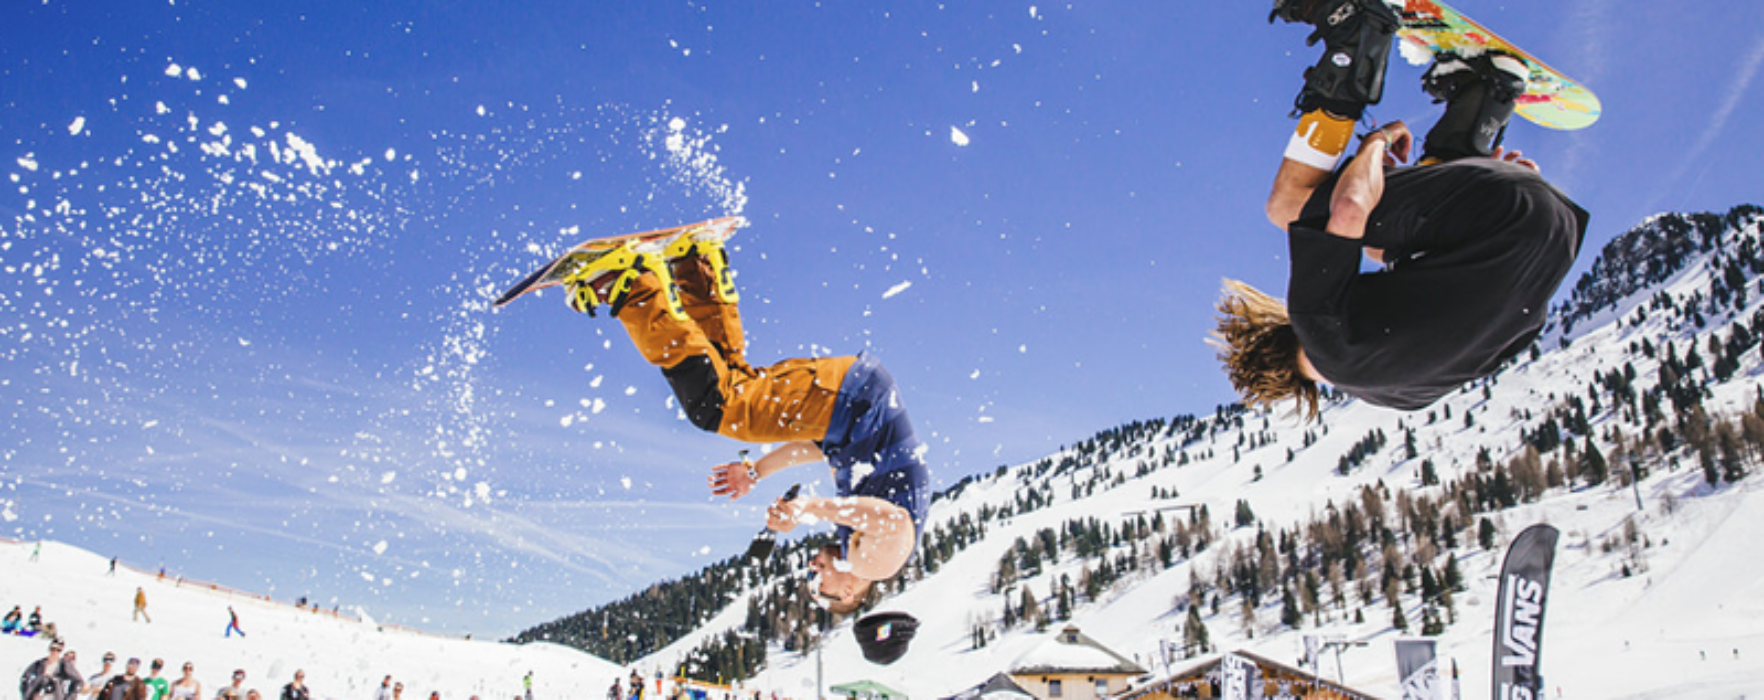 Hit the slopes this winter without breaking…the bank